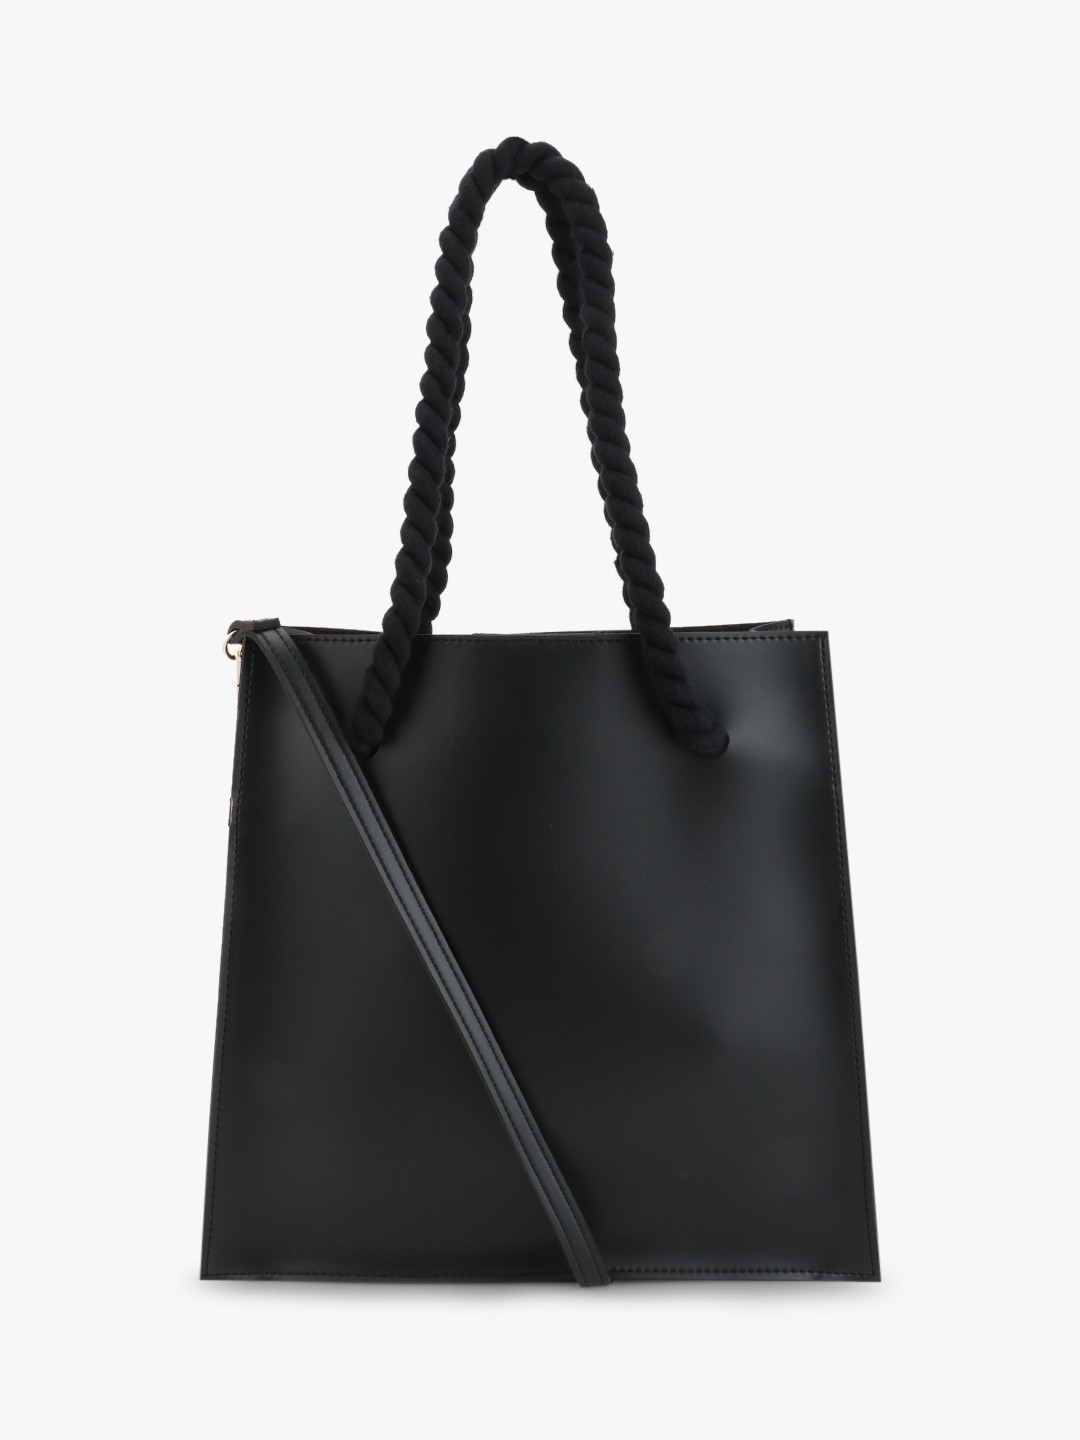 Paris Belle Black Tote Bag With Rope Handle 1